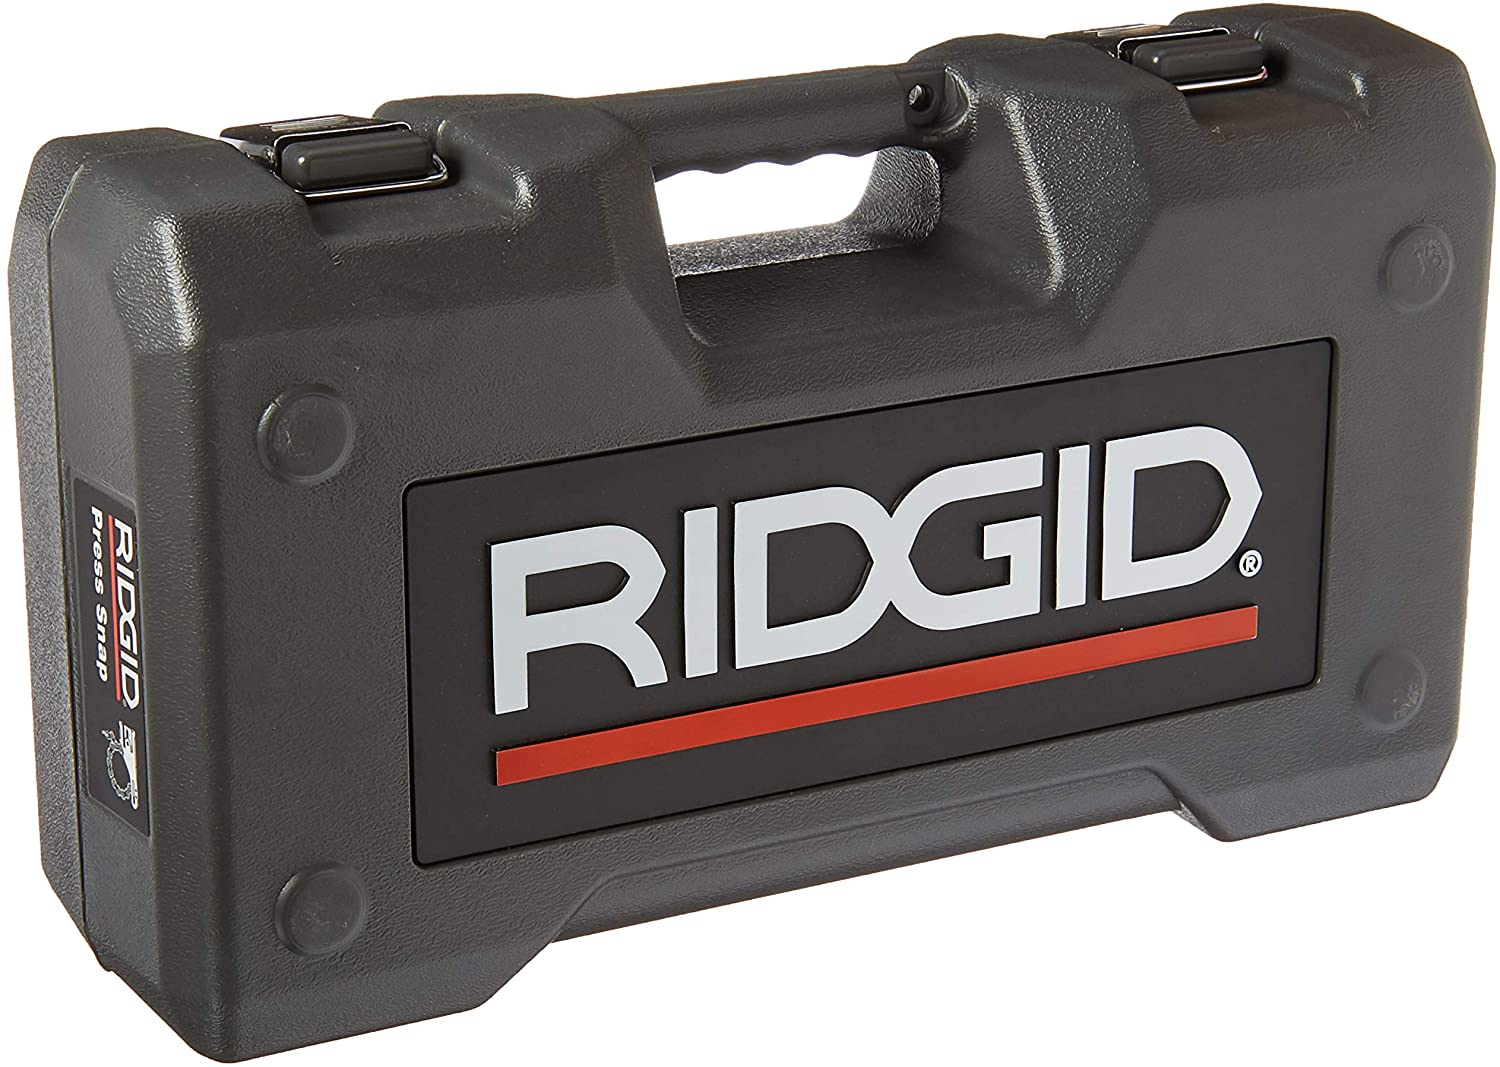 Ridgid 34678 Case, Press Snap Soil Pipe CTR